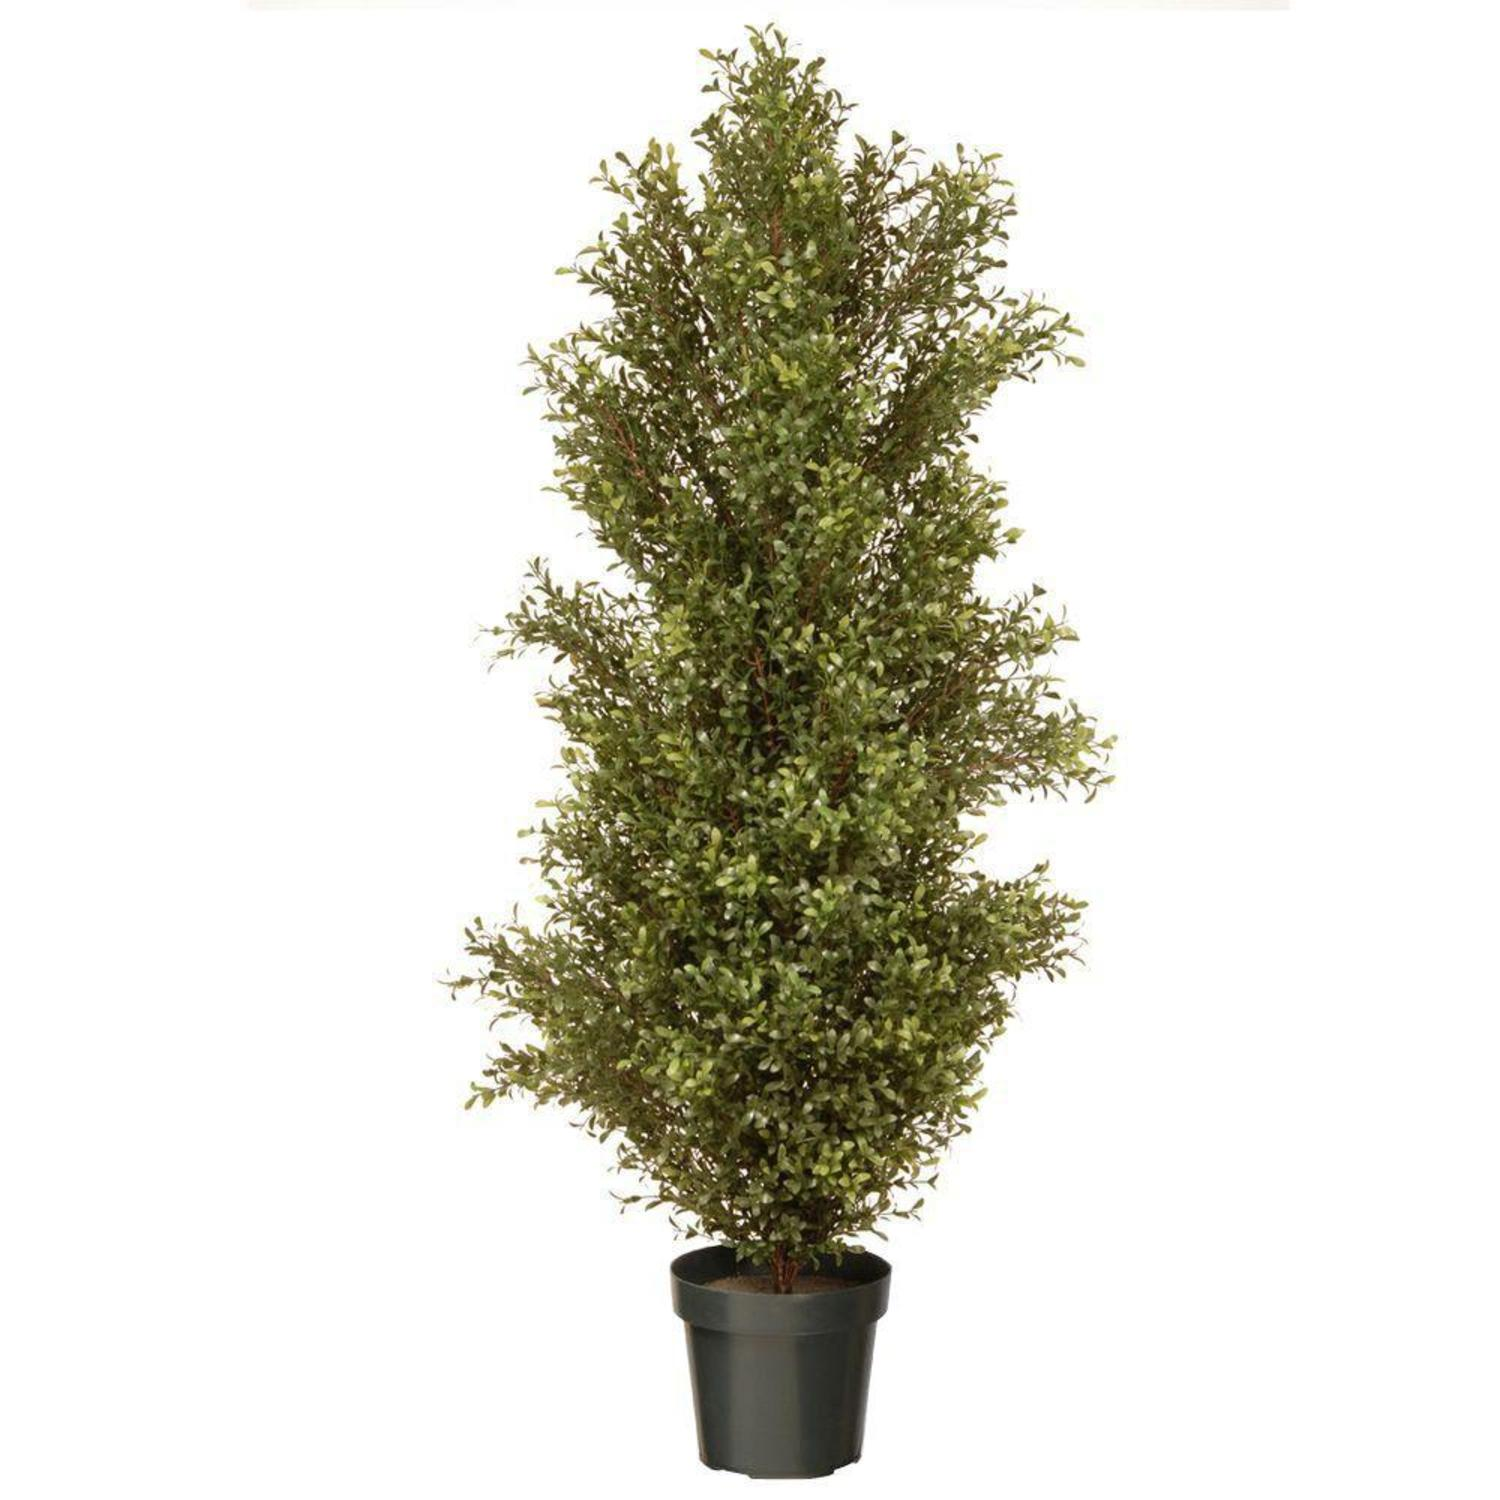 "60"" Potted Tall Artificial Two-Tone Green Argentia Plant"